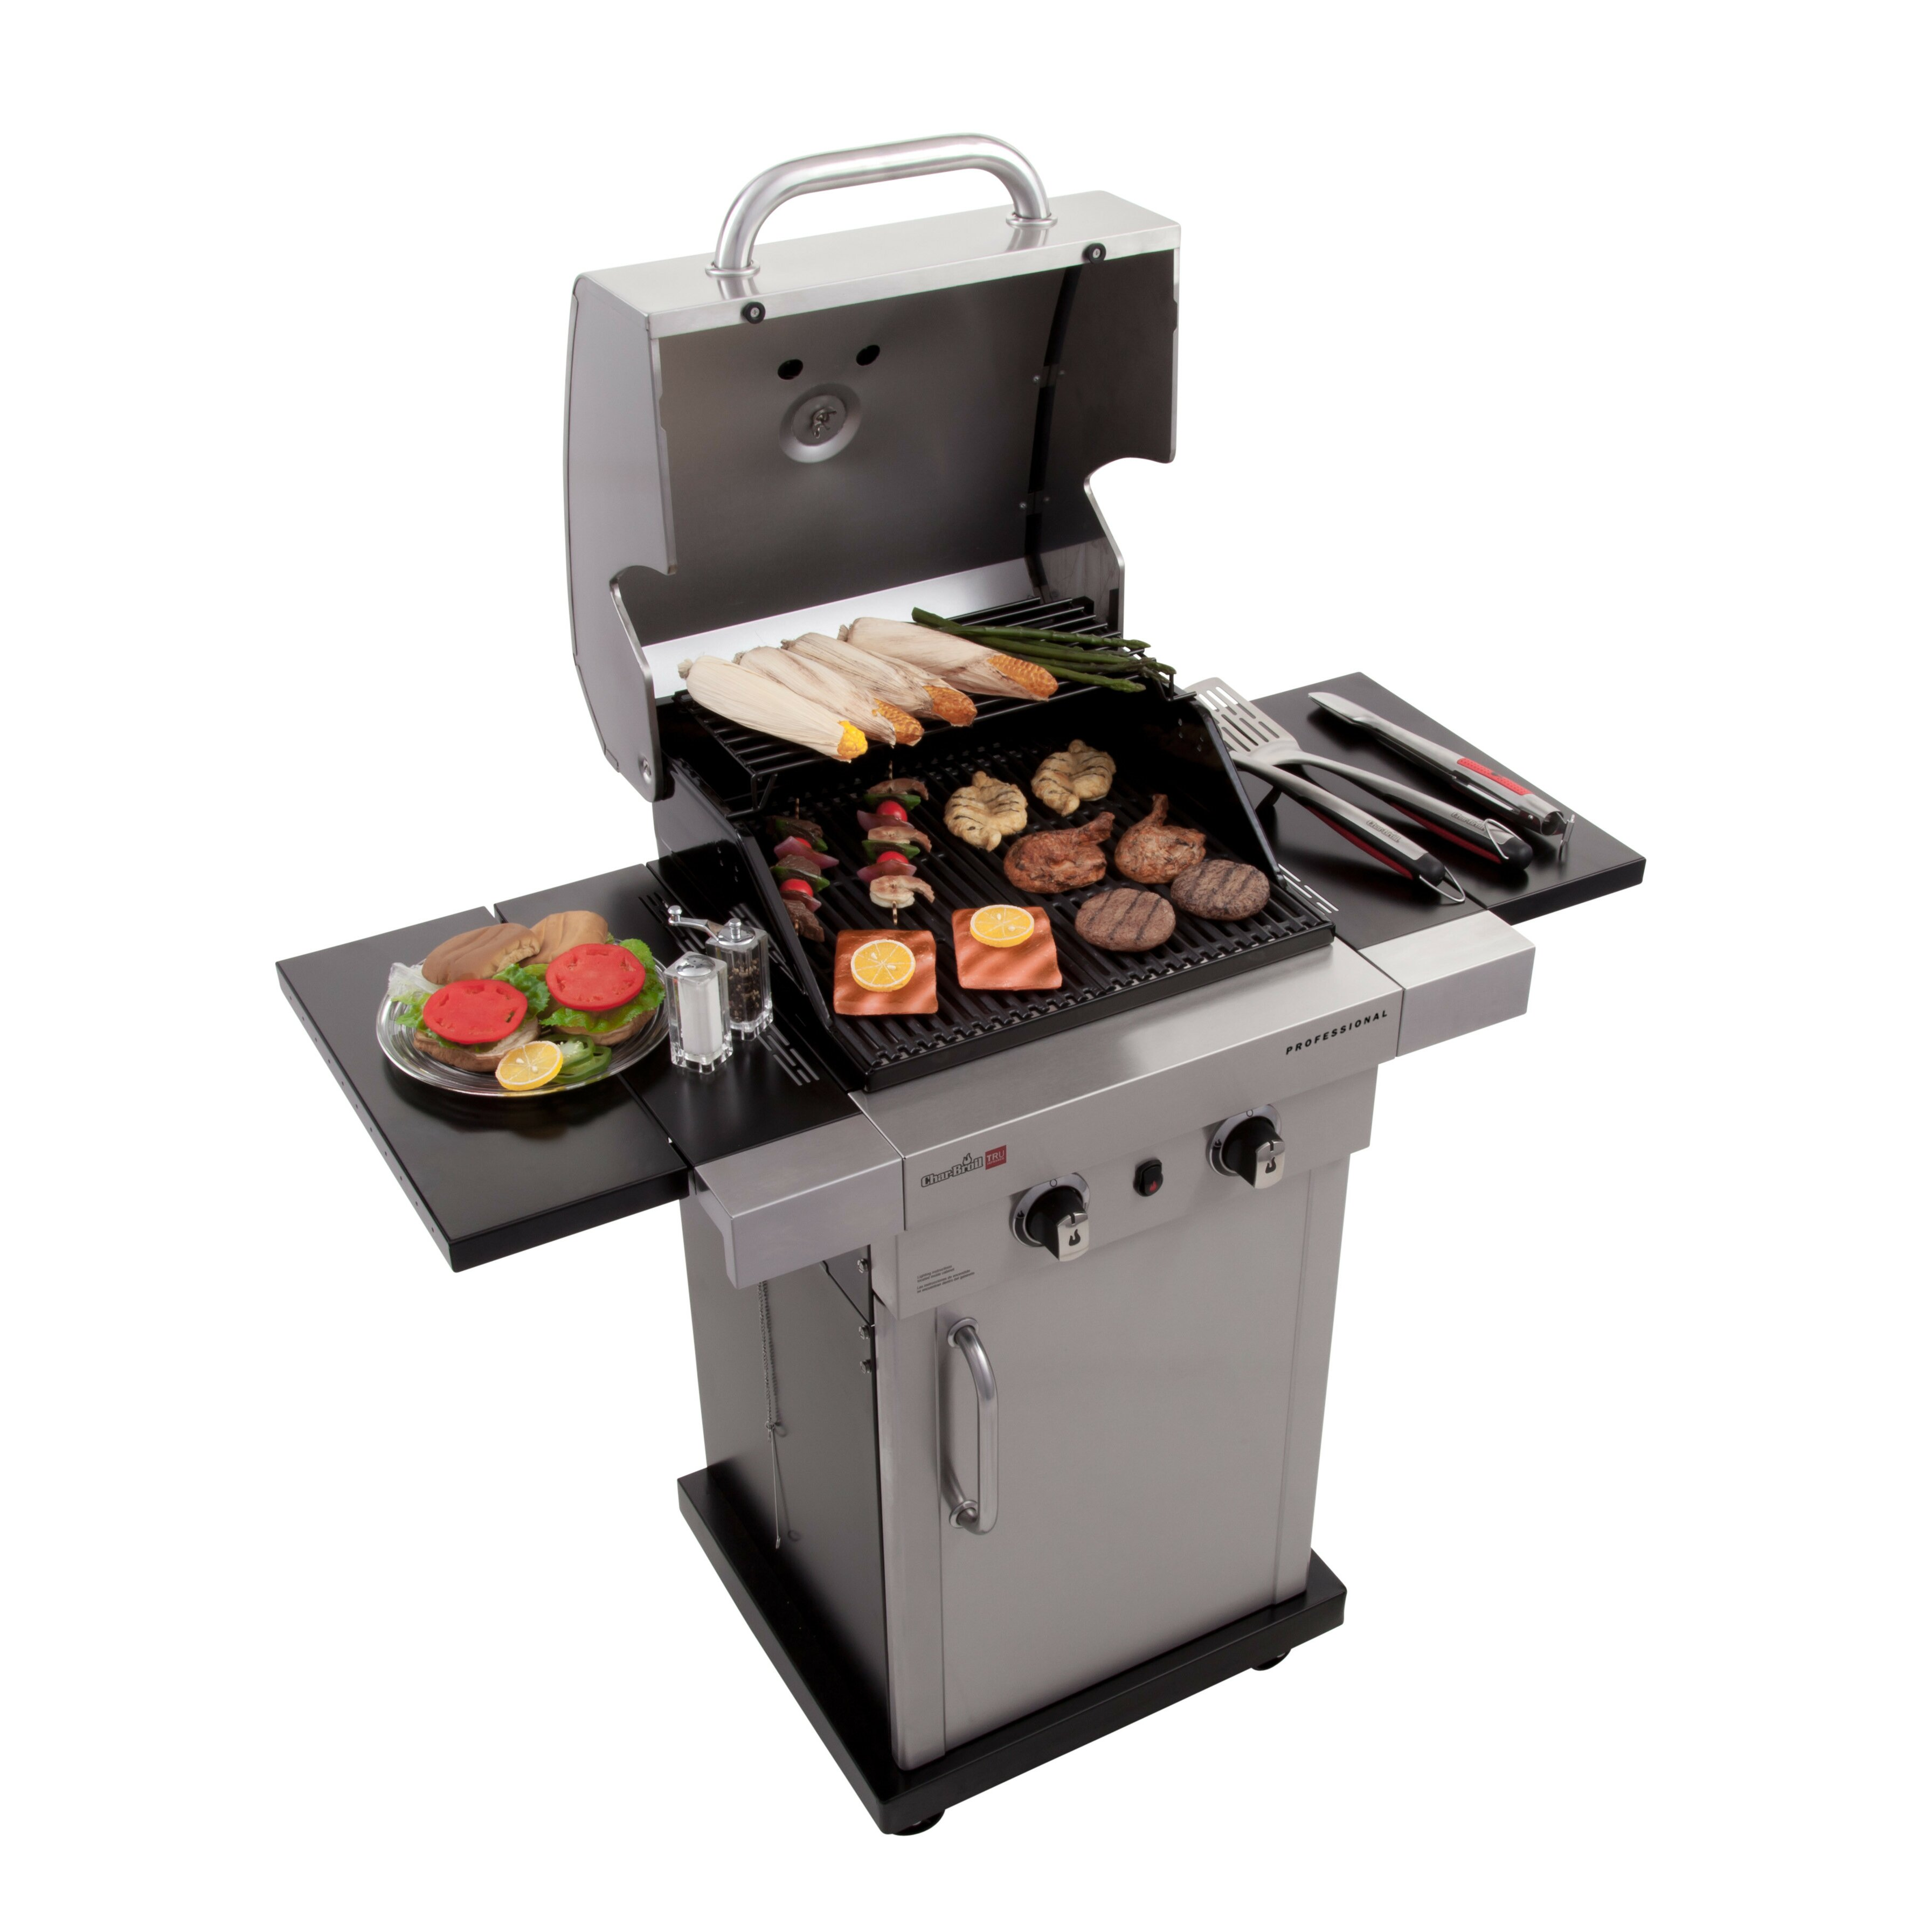 Charbroil Signature Infrared 2 Burner Propane Gas Grill